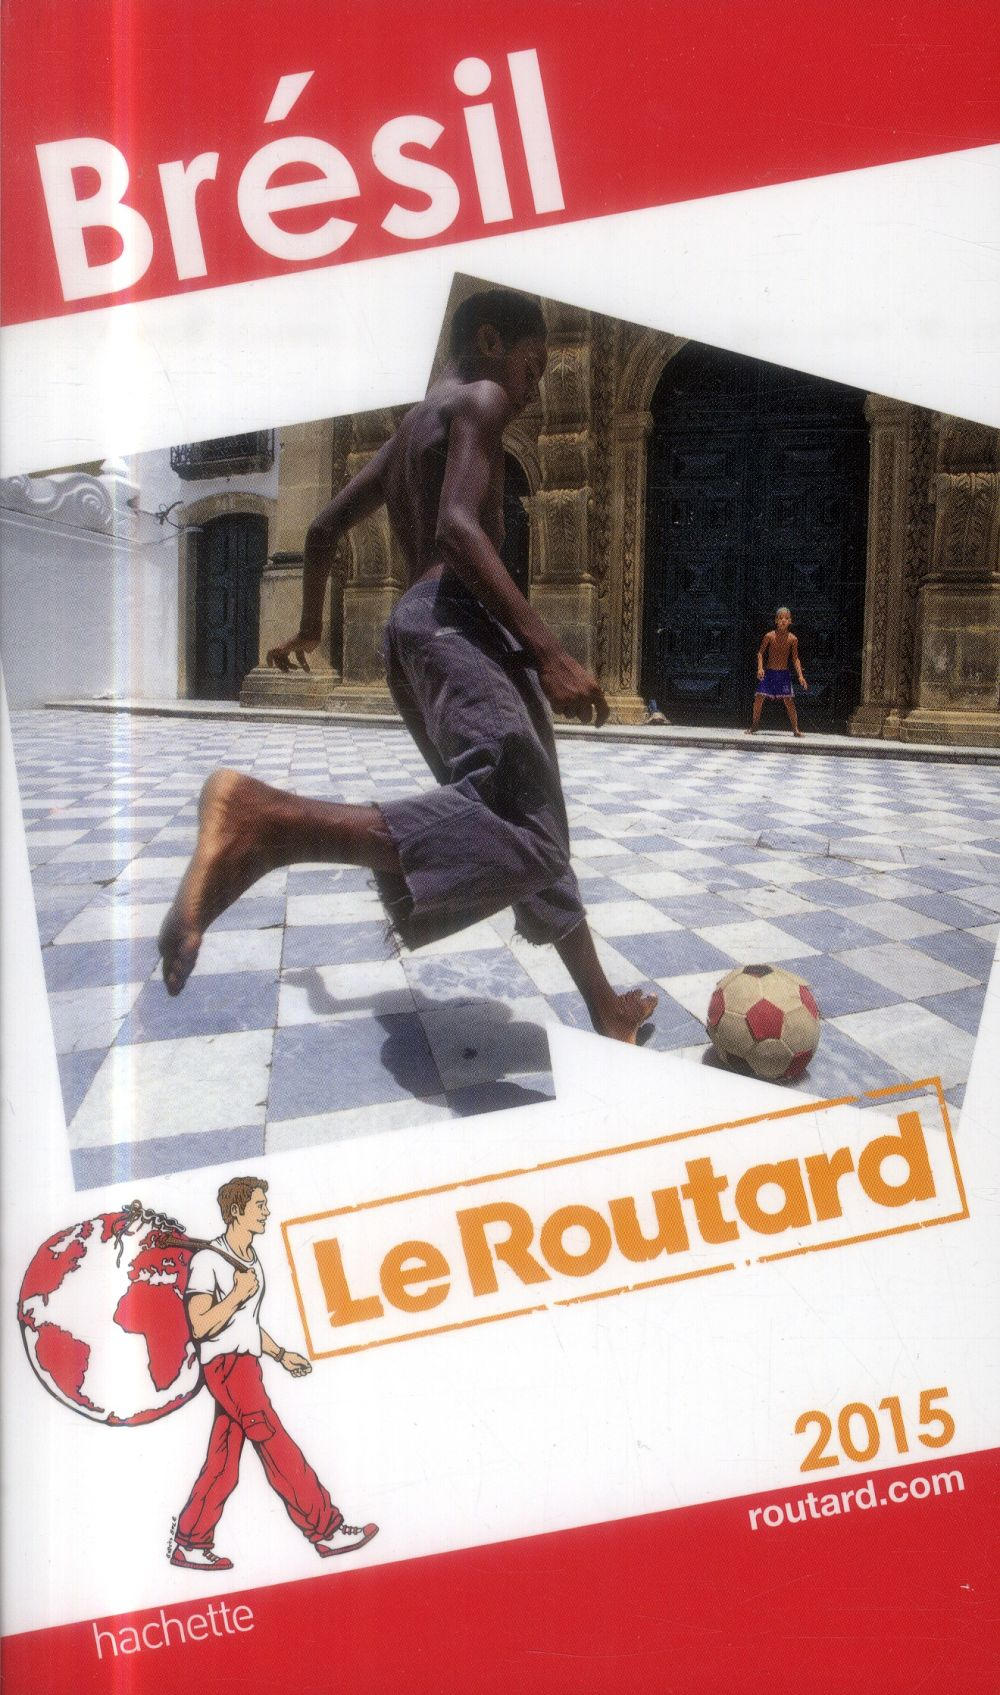 Guide Du Routard ; Bresil (Edition 2015)